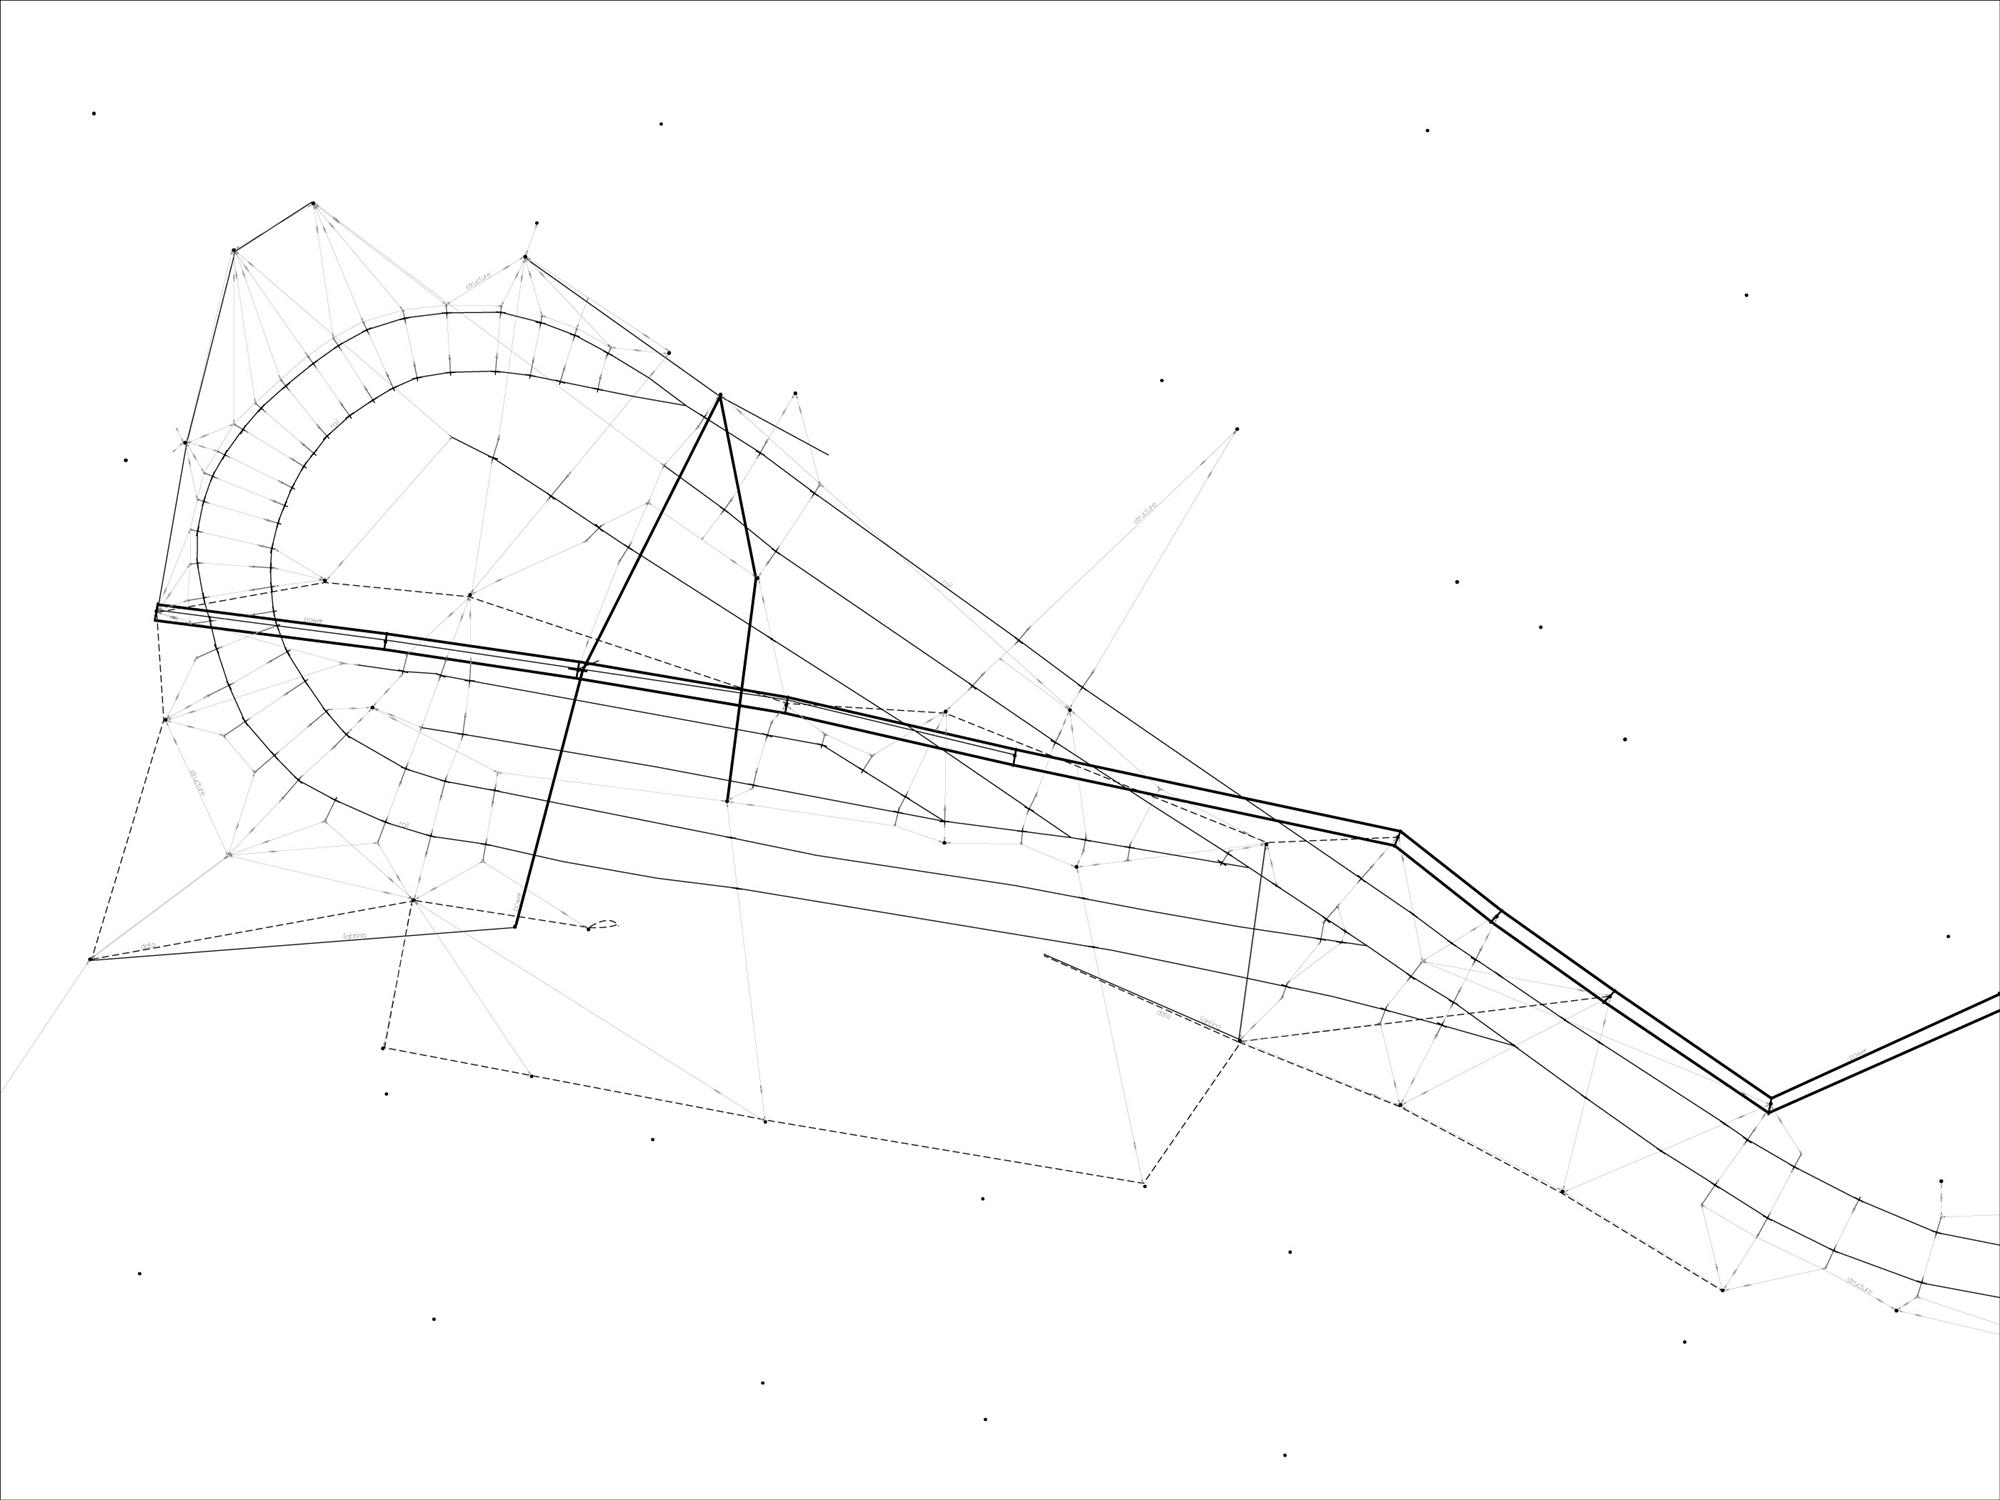 One of the aspects of the site that I foundfascinating was the network of cables used to power the tram. This drawing is a mapping of all of the cables on the site including their function and connection types.